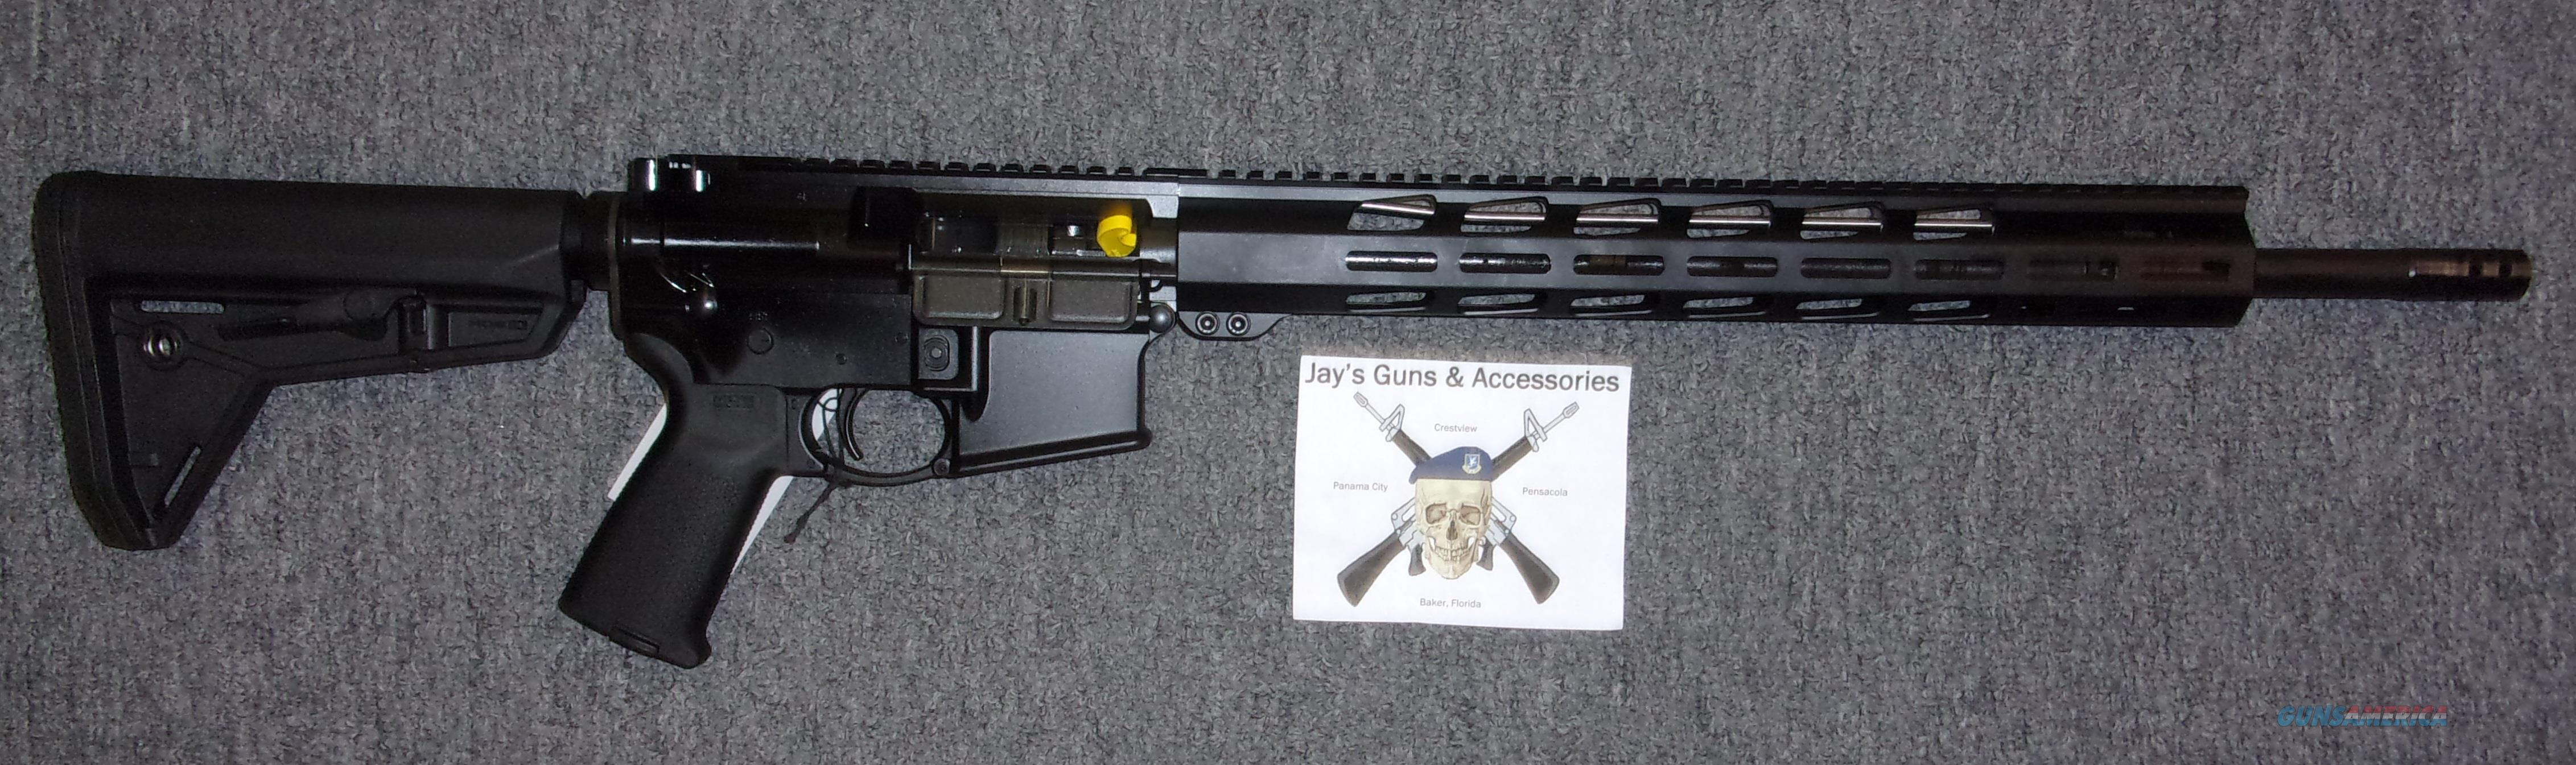 Ruger AR-556 MPR  Guns > Rifles > Ruger Rifles > AR Series